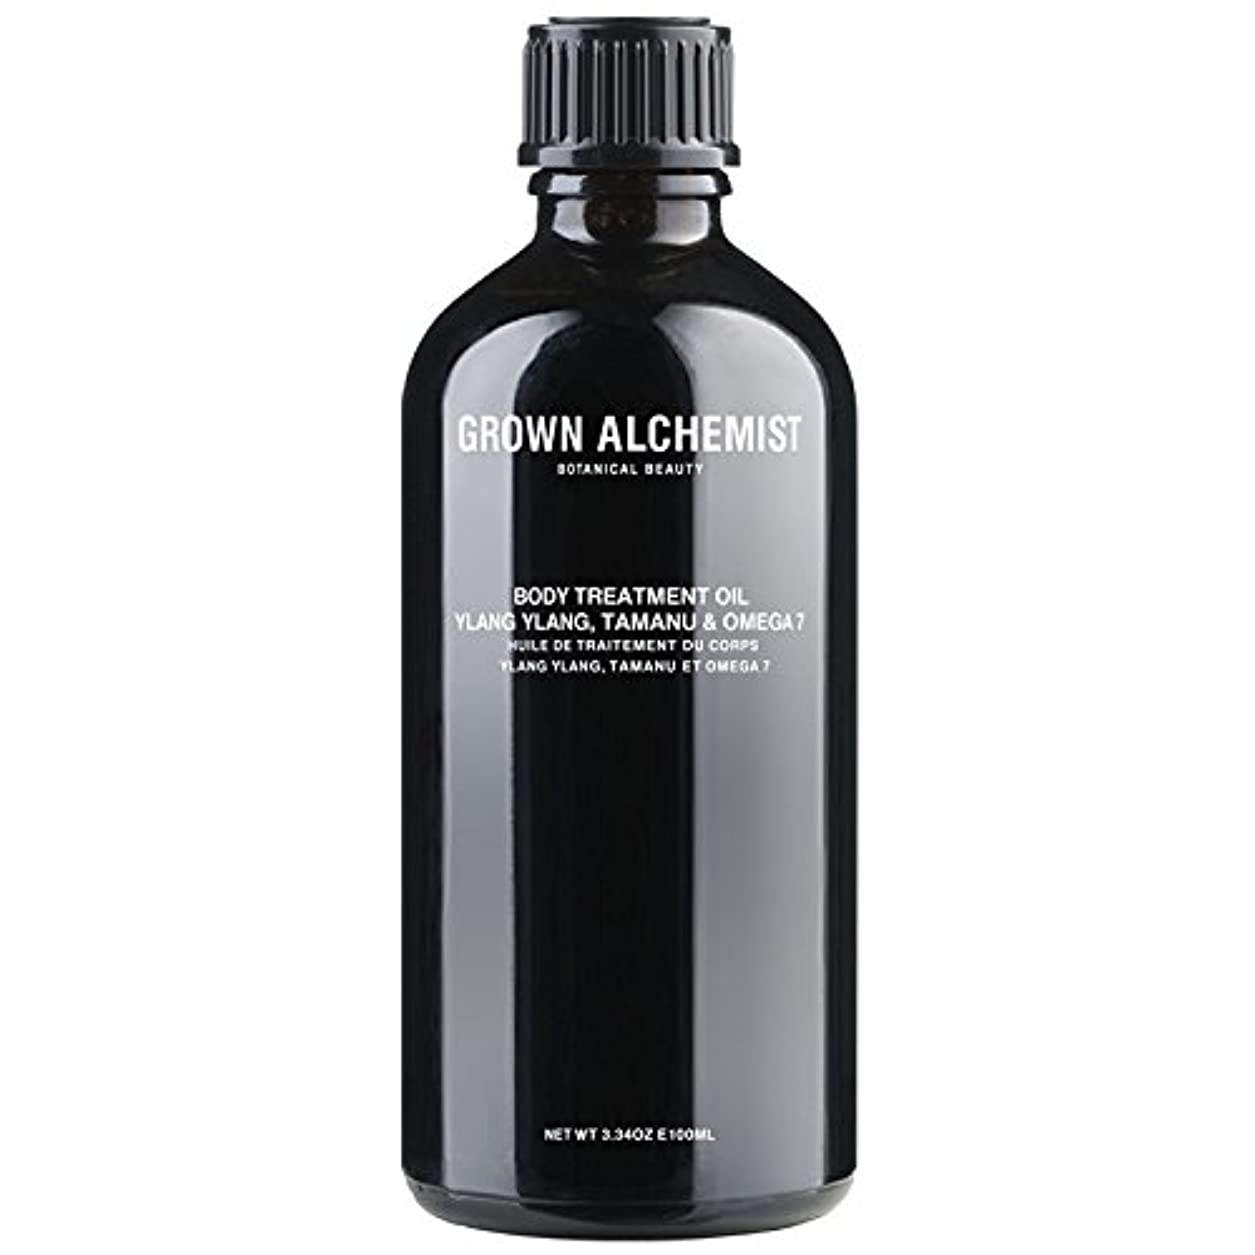 Grown Alchemist Body Treatment Oil - Ylang Ylang, Tamanu & Omega 7 100ml/3.34oz並行輸入品